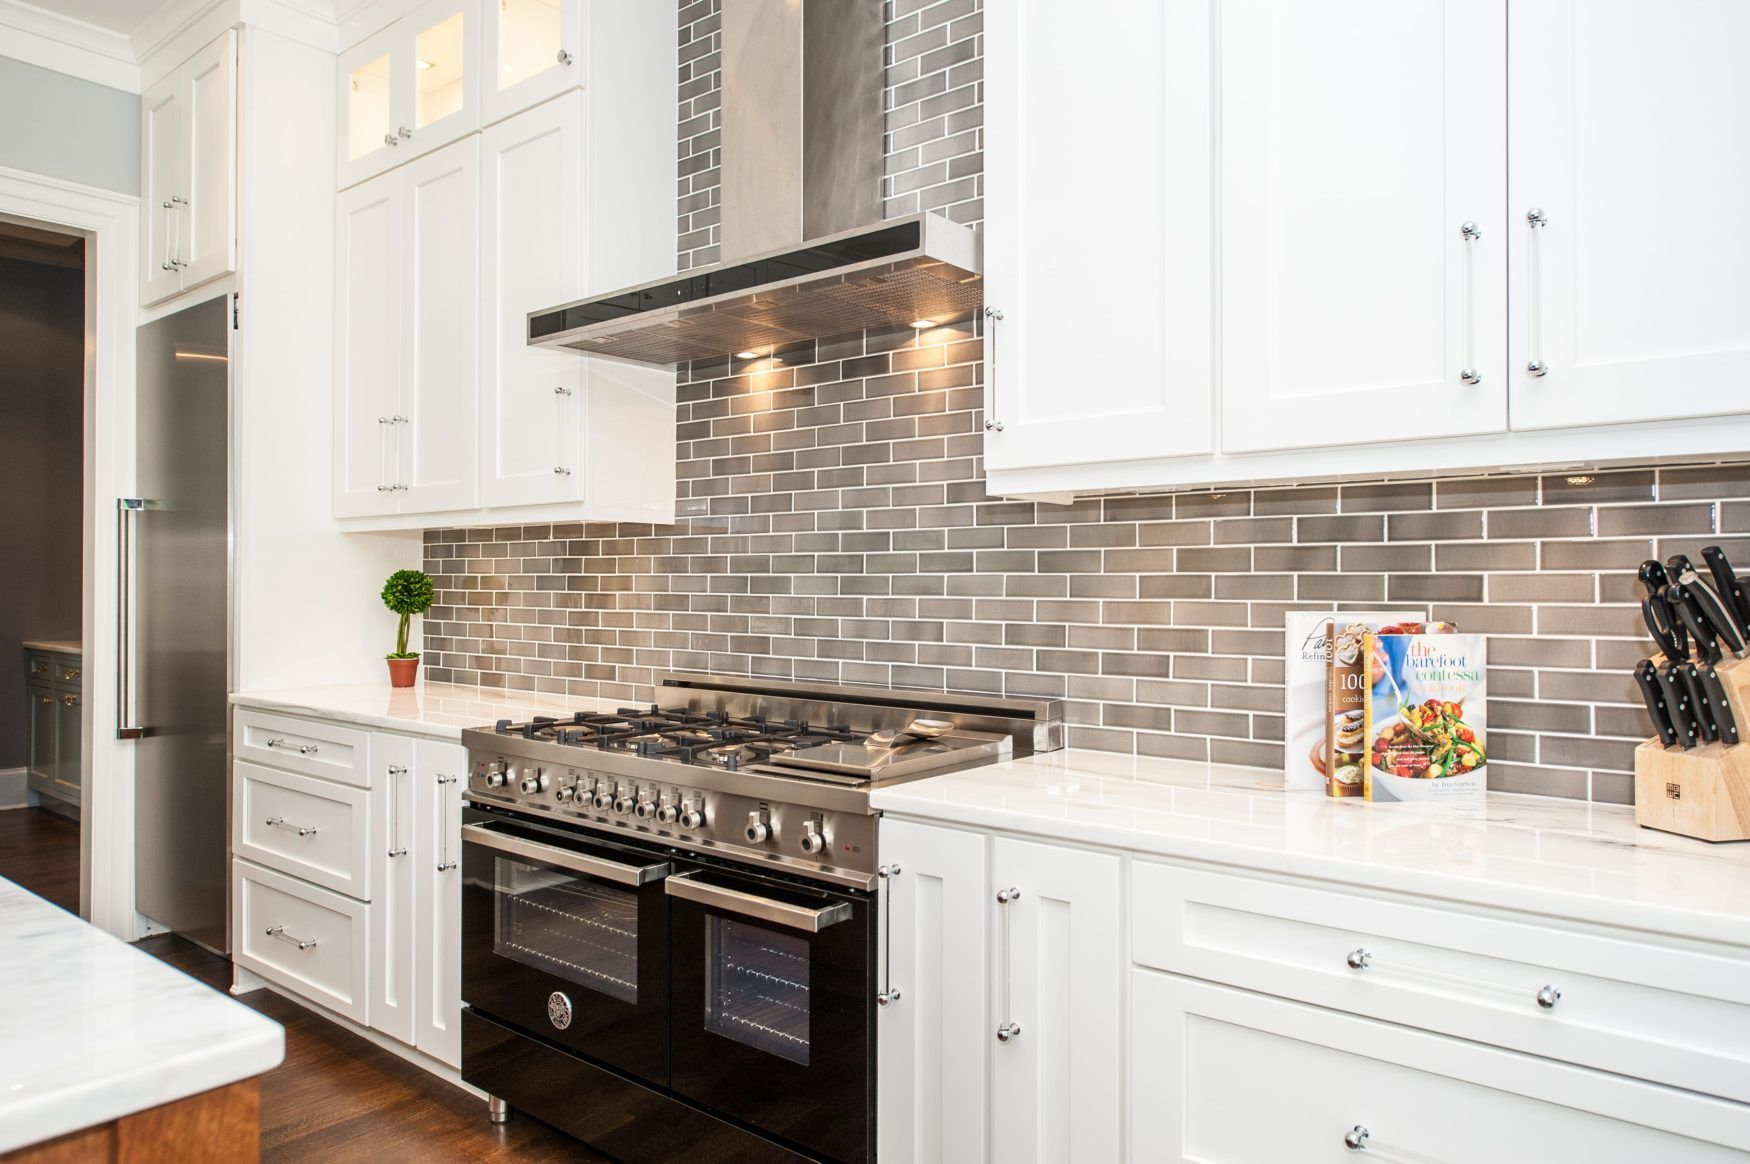 Eclectic Kitchen In Bethesda Md Kitchen Remodel Kitchen Cabinet Design Kitchen Remodeling Projects